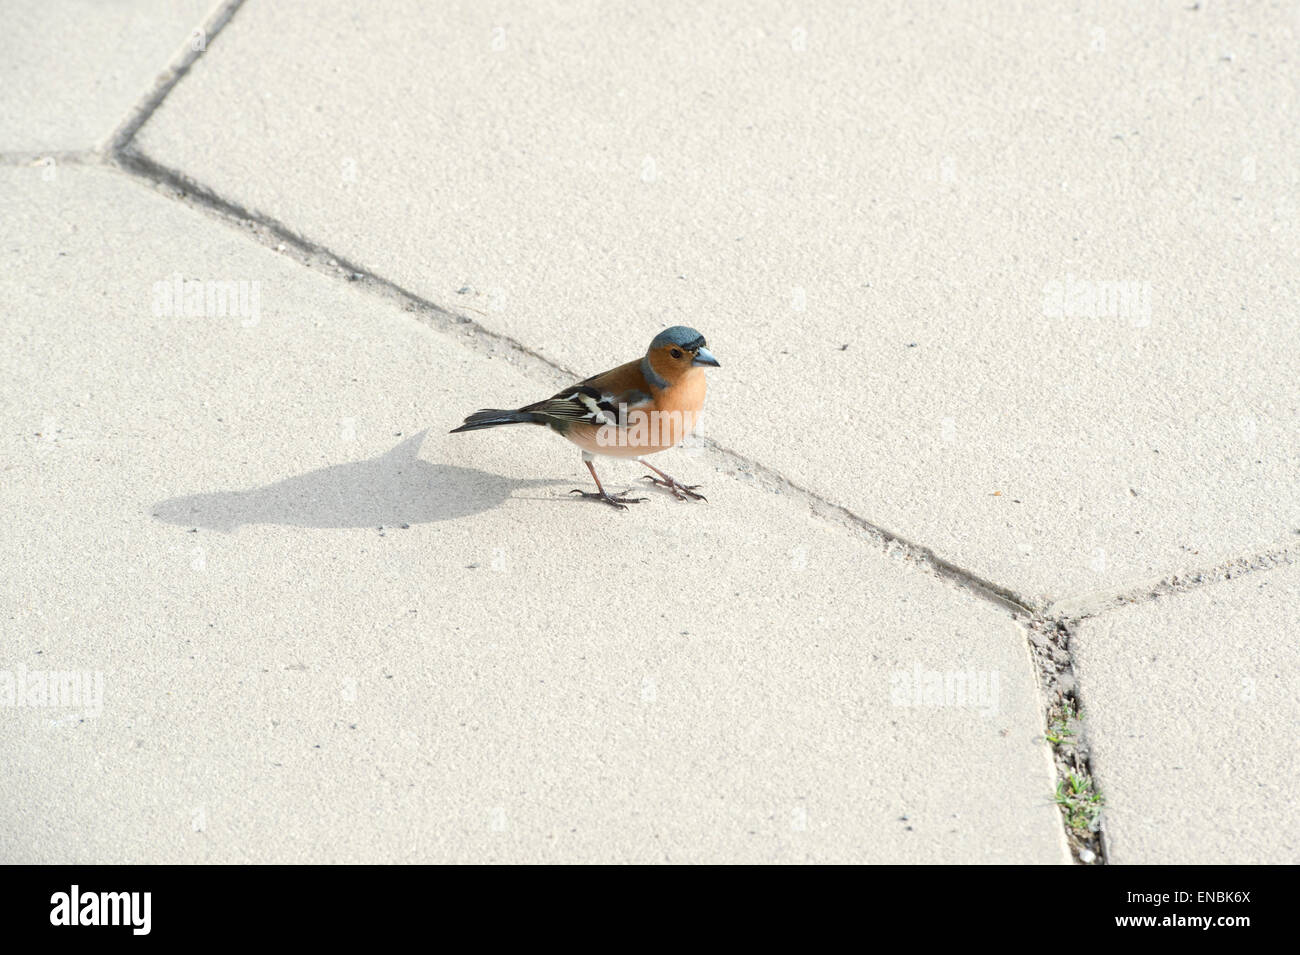 Fringilla Coelebs, Male chaffinch with shadow on a sun lit garden path. UK - Stock Image